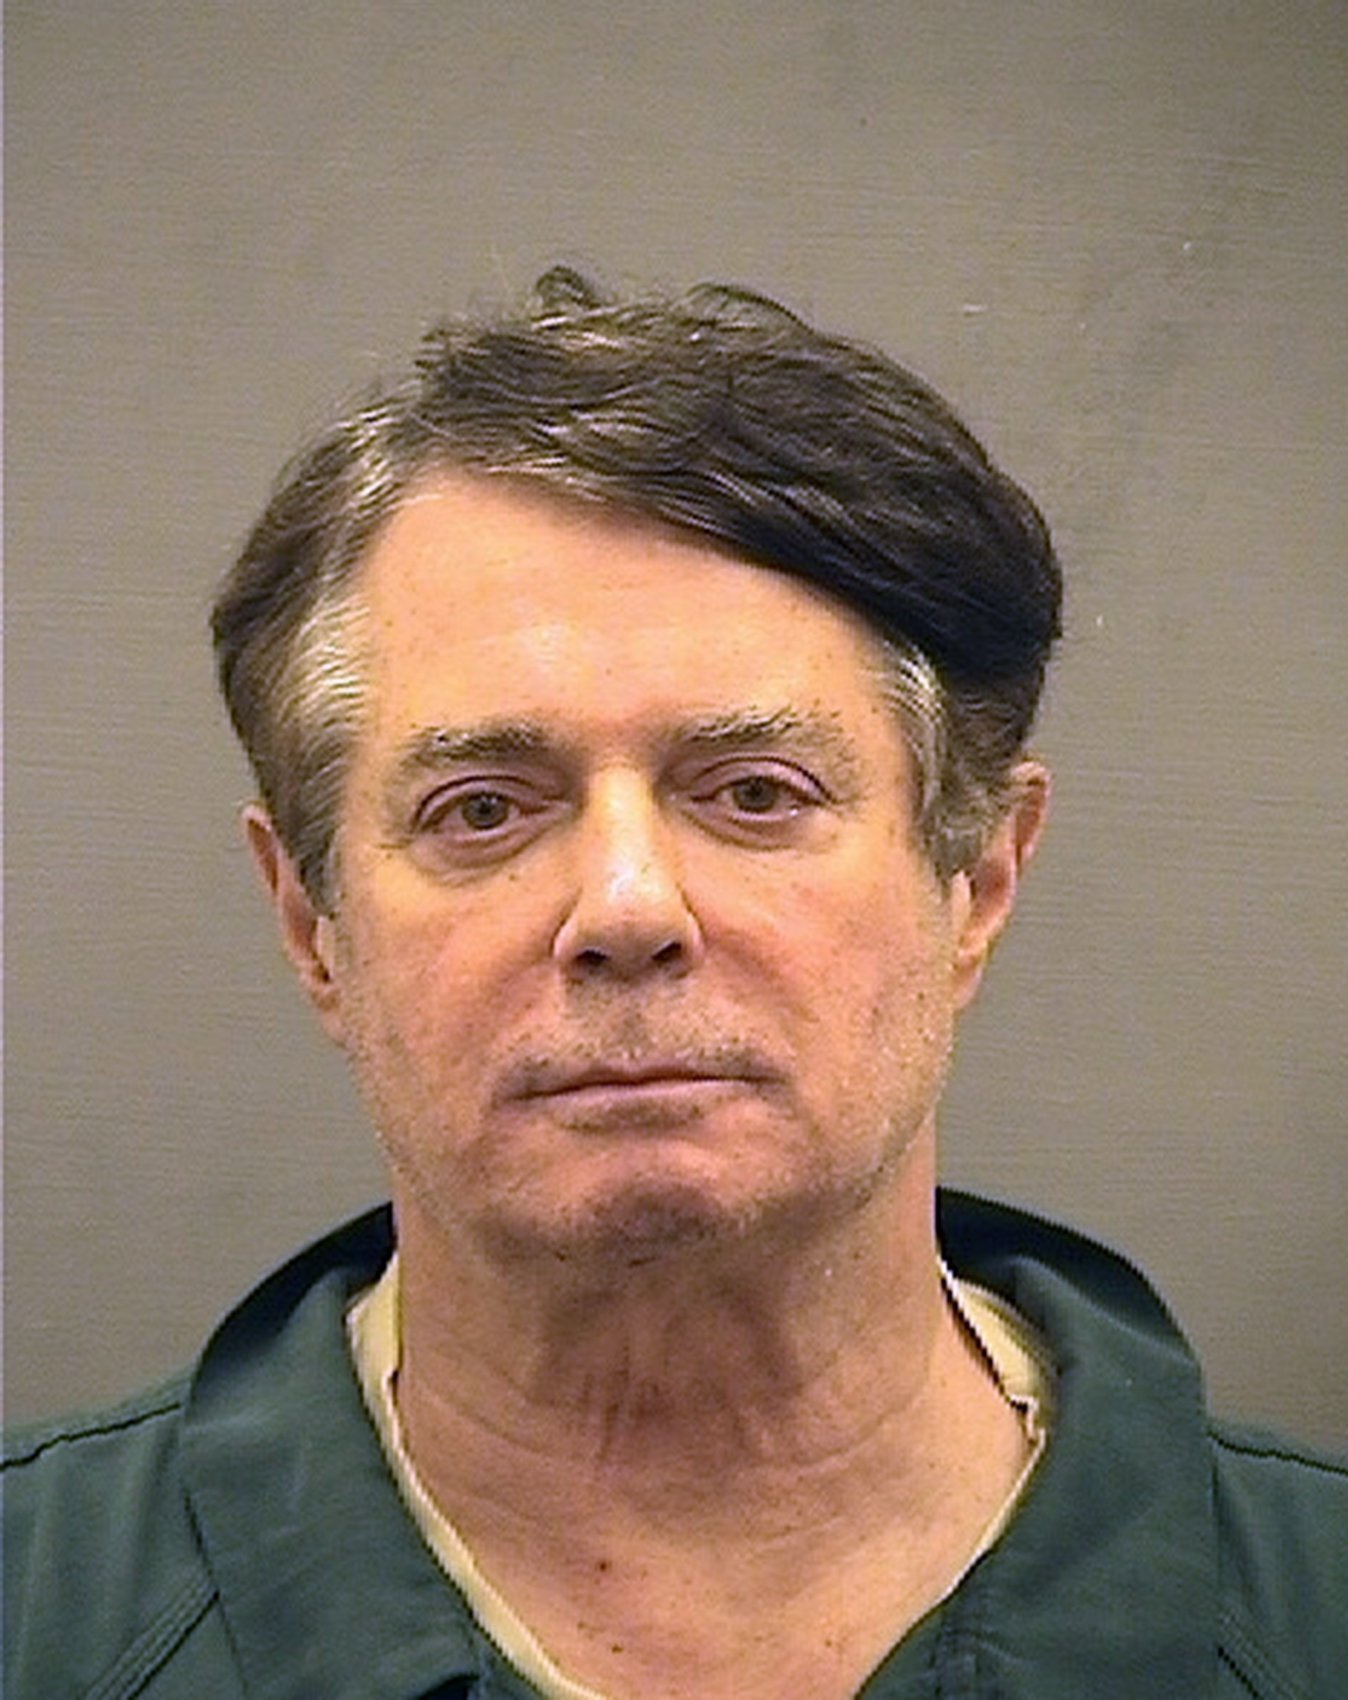 Paul Manafort's mugshot at the Alexandria Detention Center in Alexandria, Virginia | Photo: Getty Images